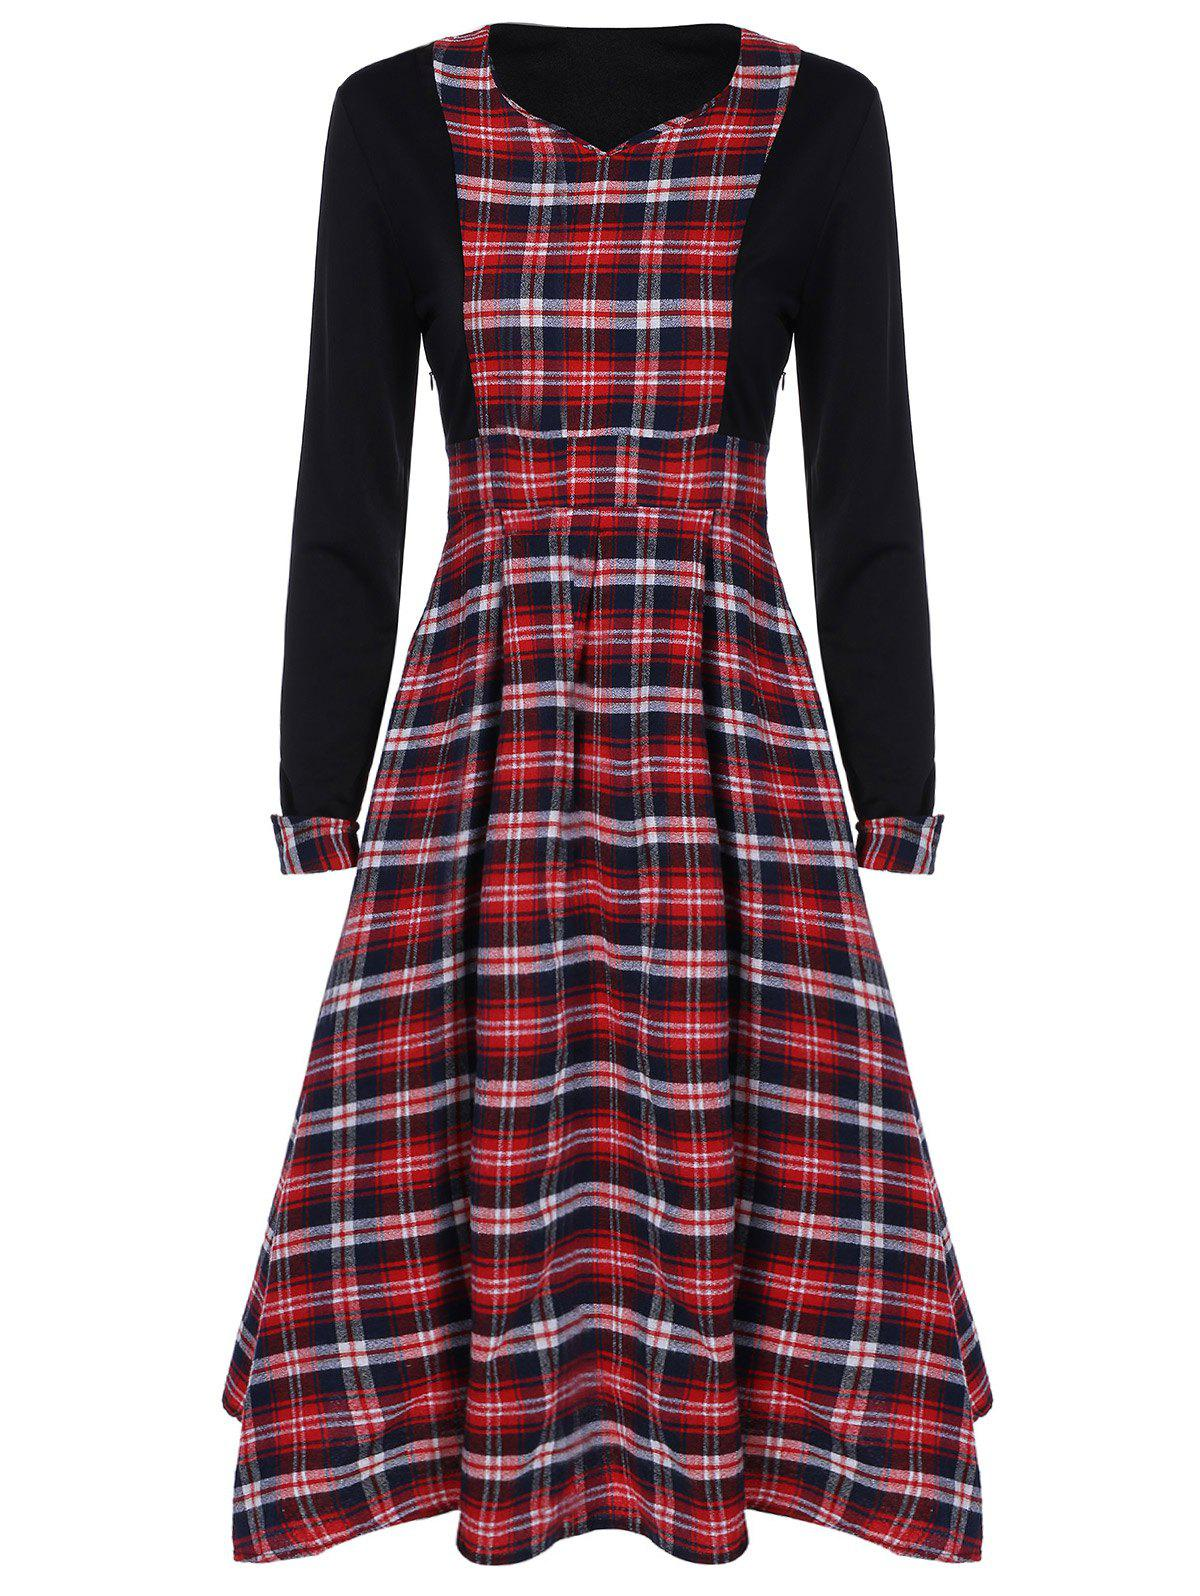 Scottish Plaid Patch Design Long Sleeve Vintage Dress - RED/BLACK 2XL